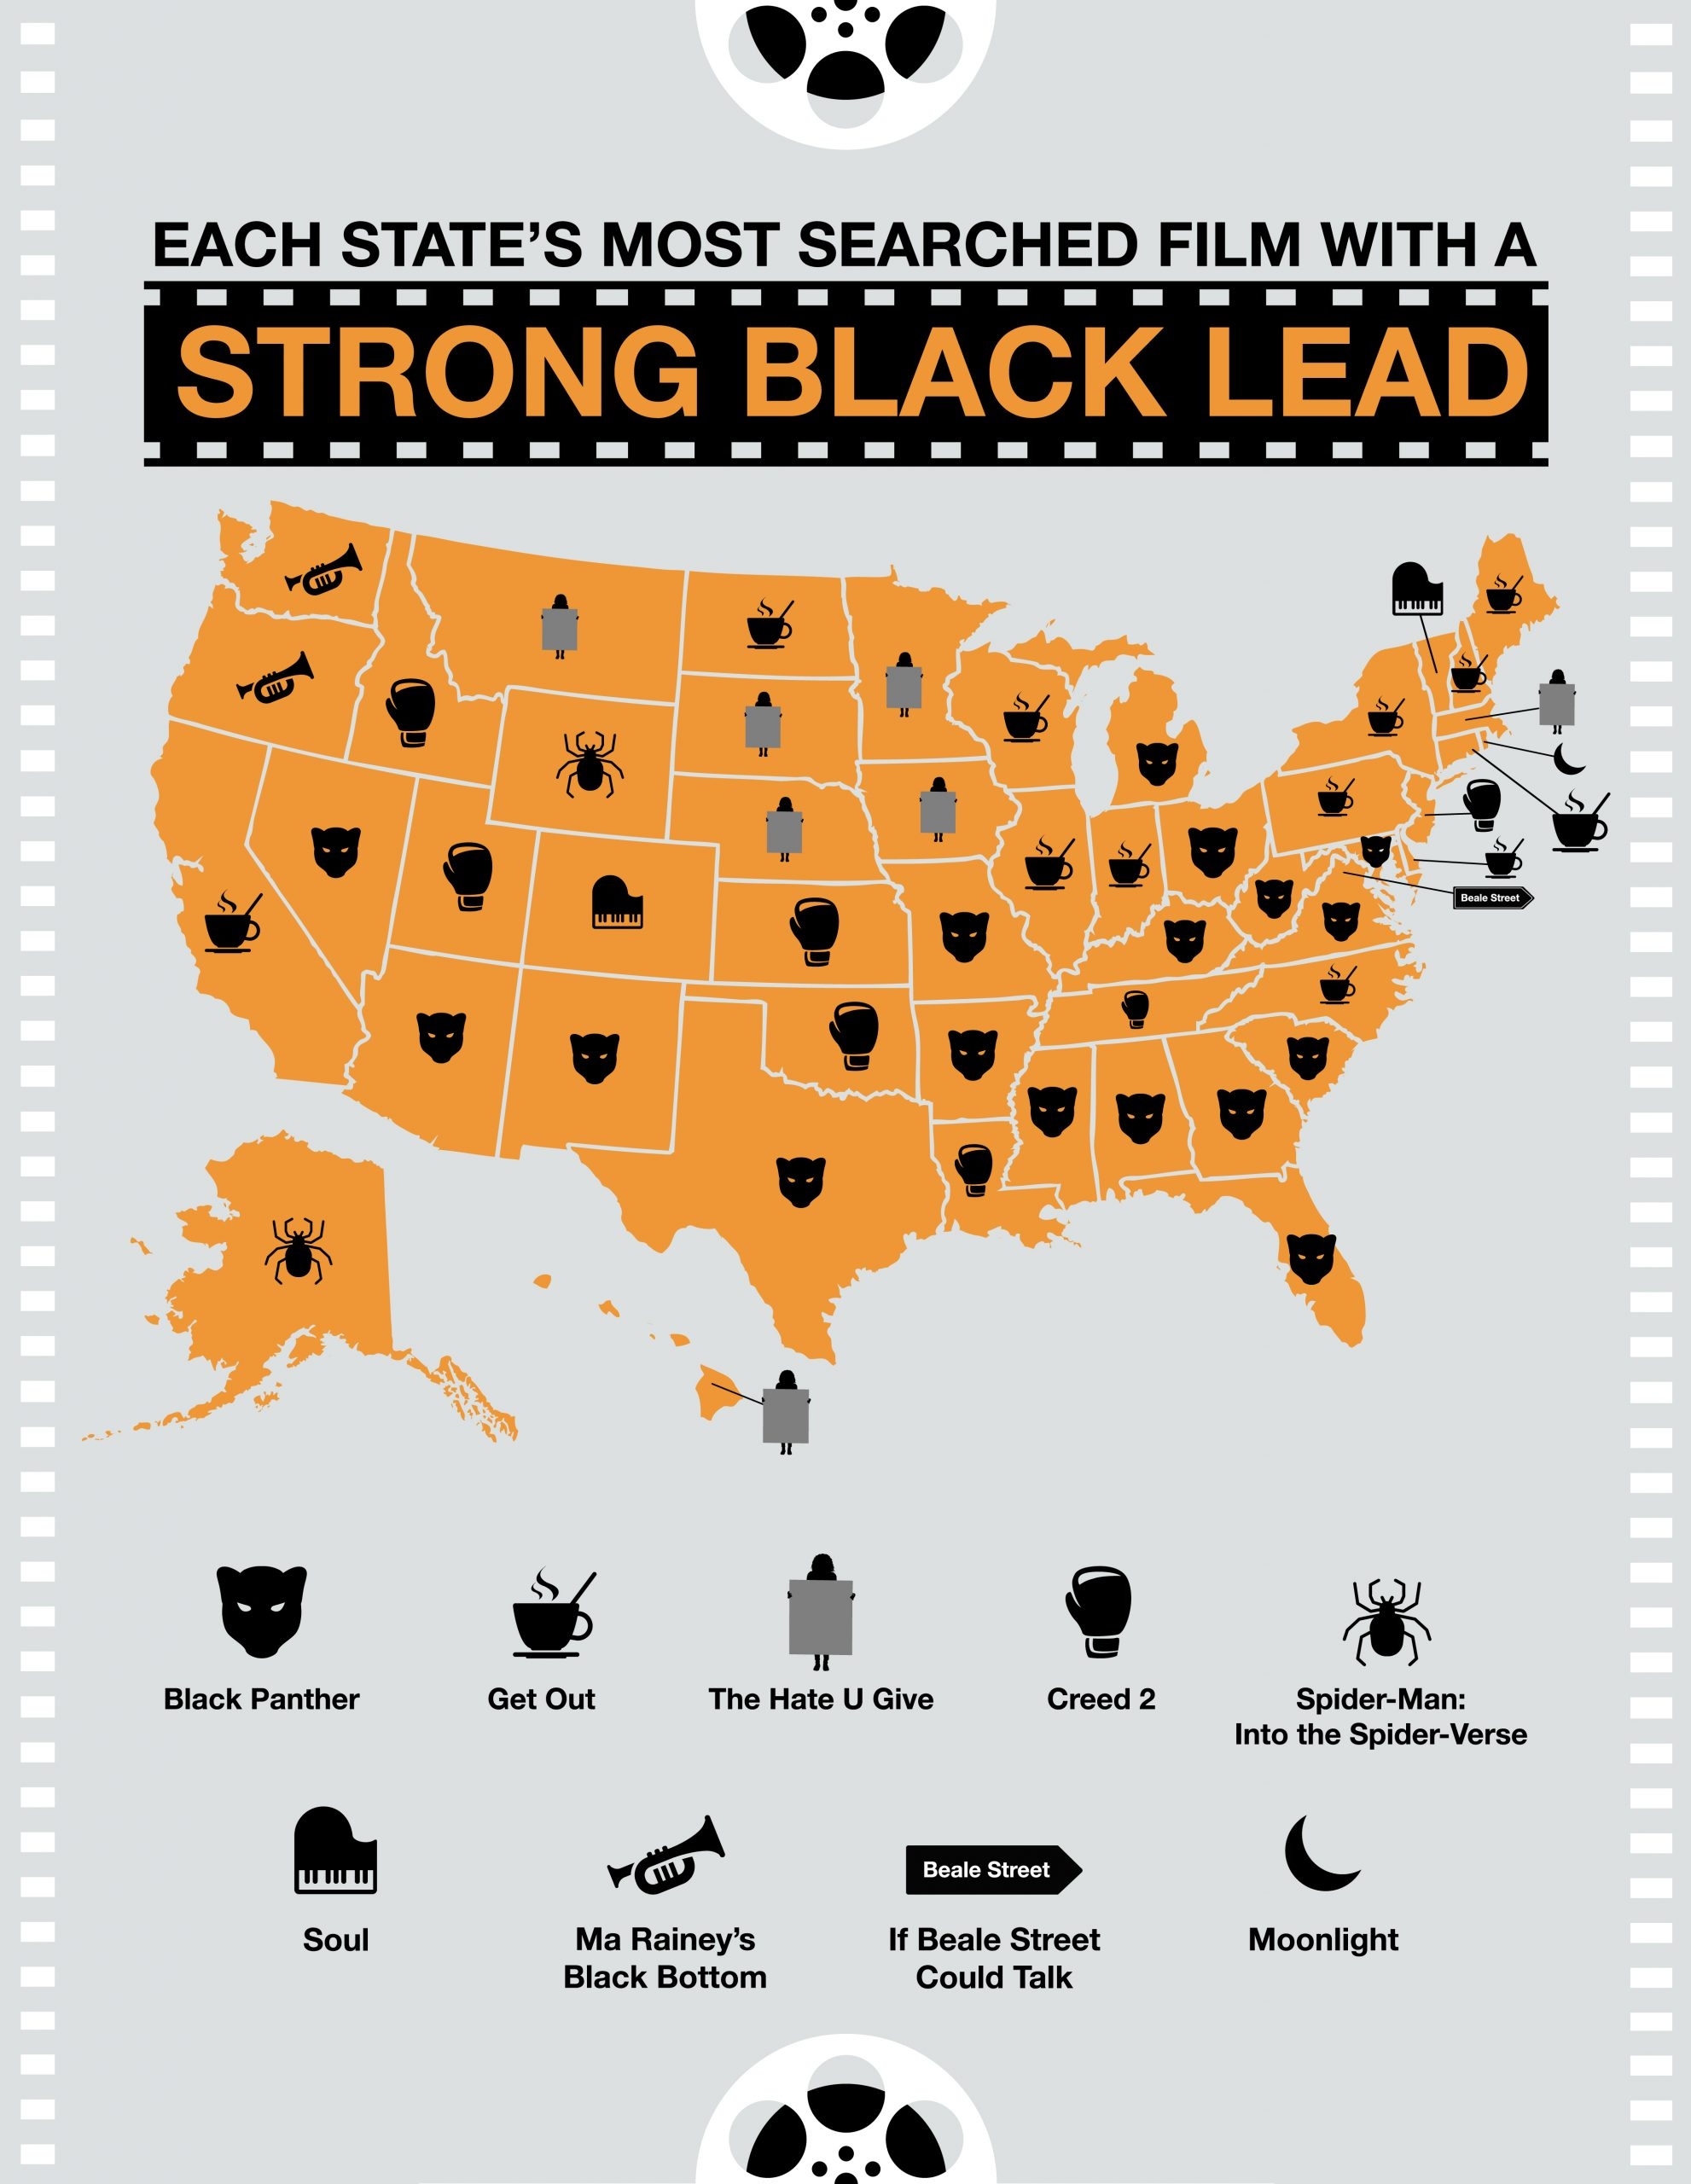 Each State's Most Searched Film with a strong black lead